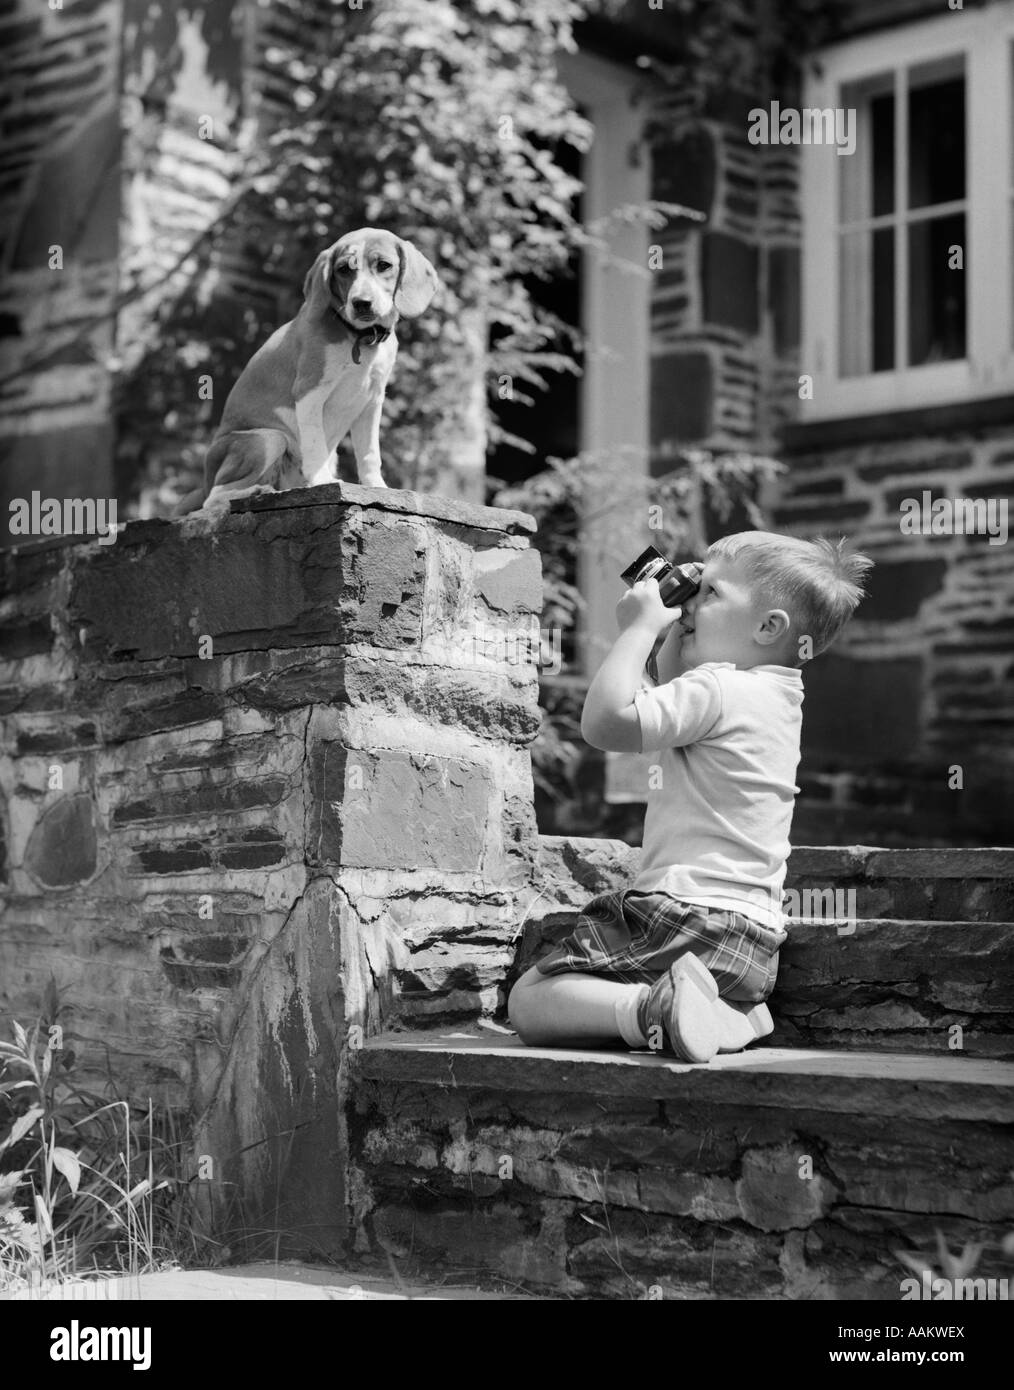 1950s YOUNG BOY KNEELING ON STONE SIDEWALK STAIRS FOCUSING CAMERA ON HOUND DOG PUPPY SITTING ON WALL - Stock Image